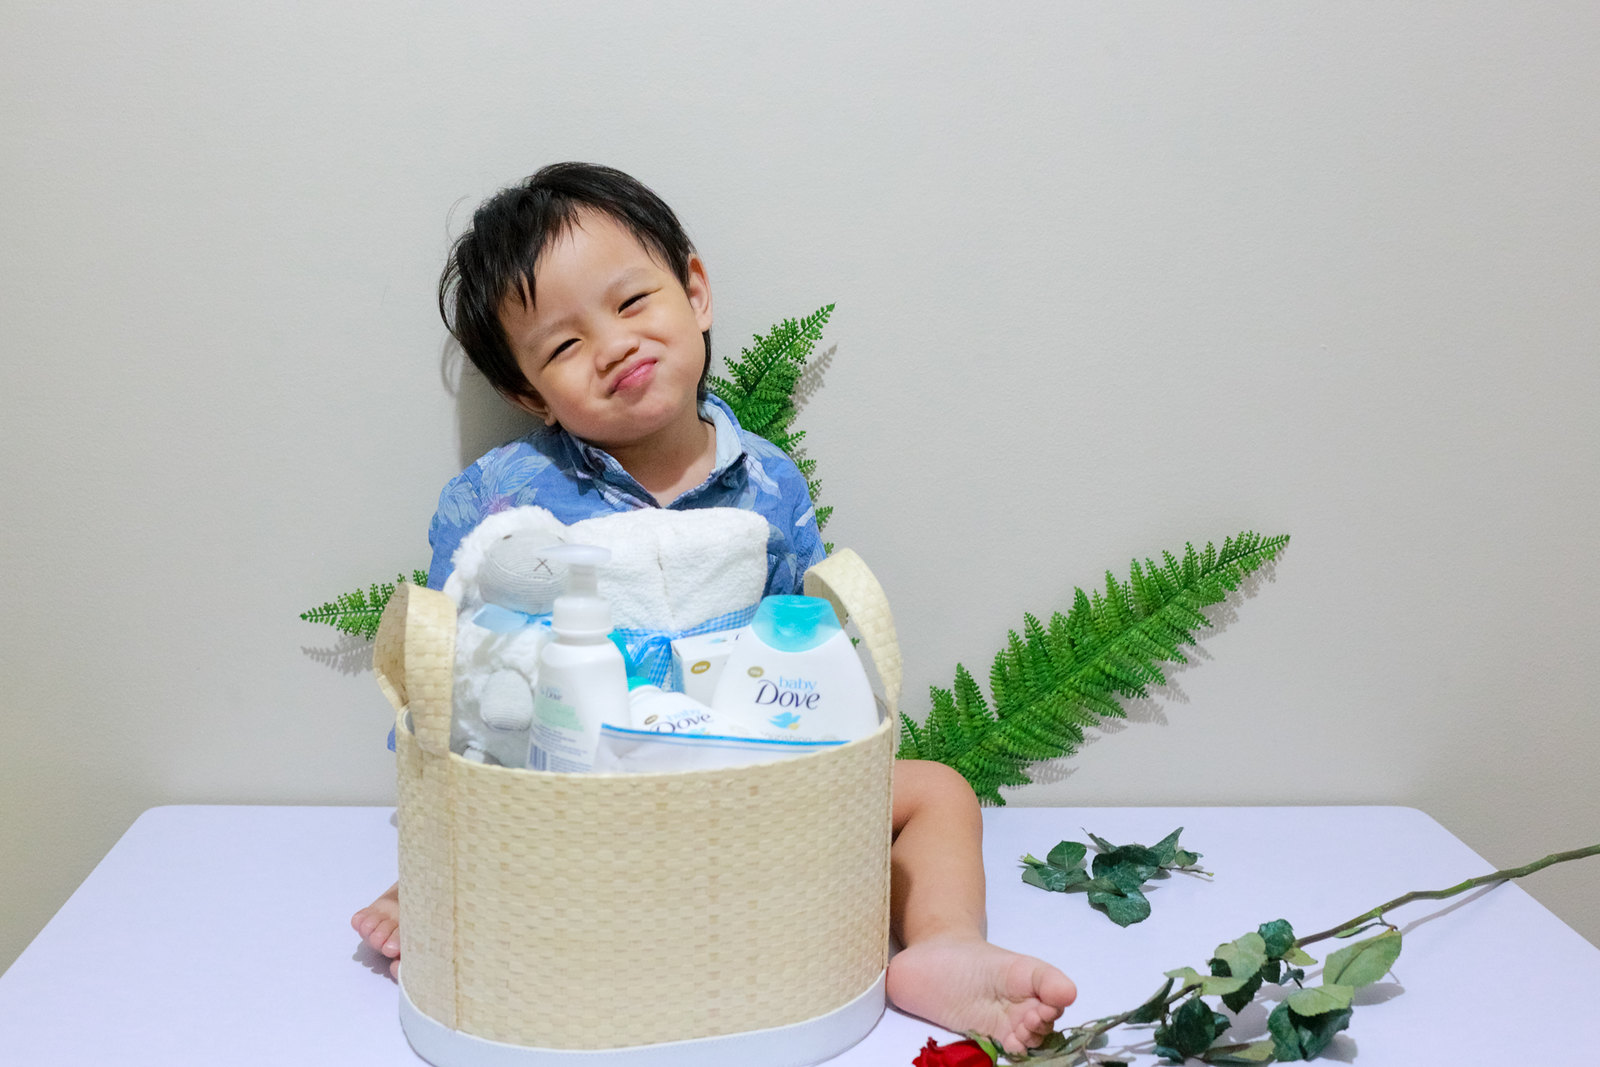 #LittleAdamBryce is happy to receive this Baby Dove basket of goodies